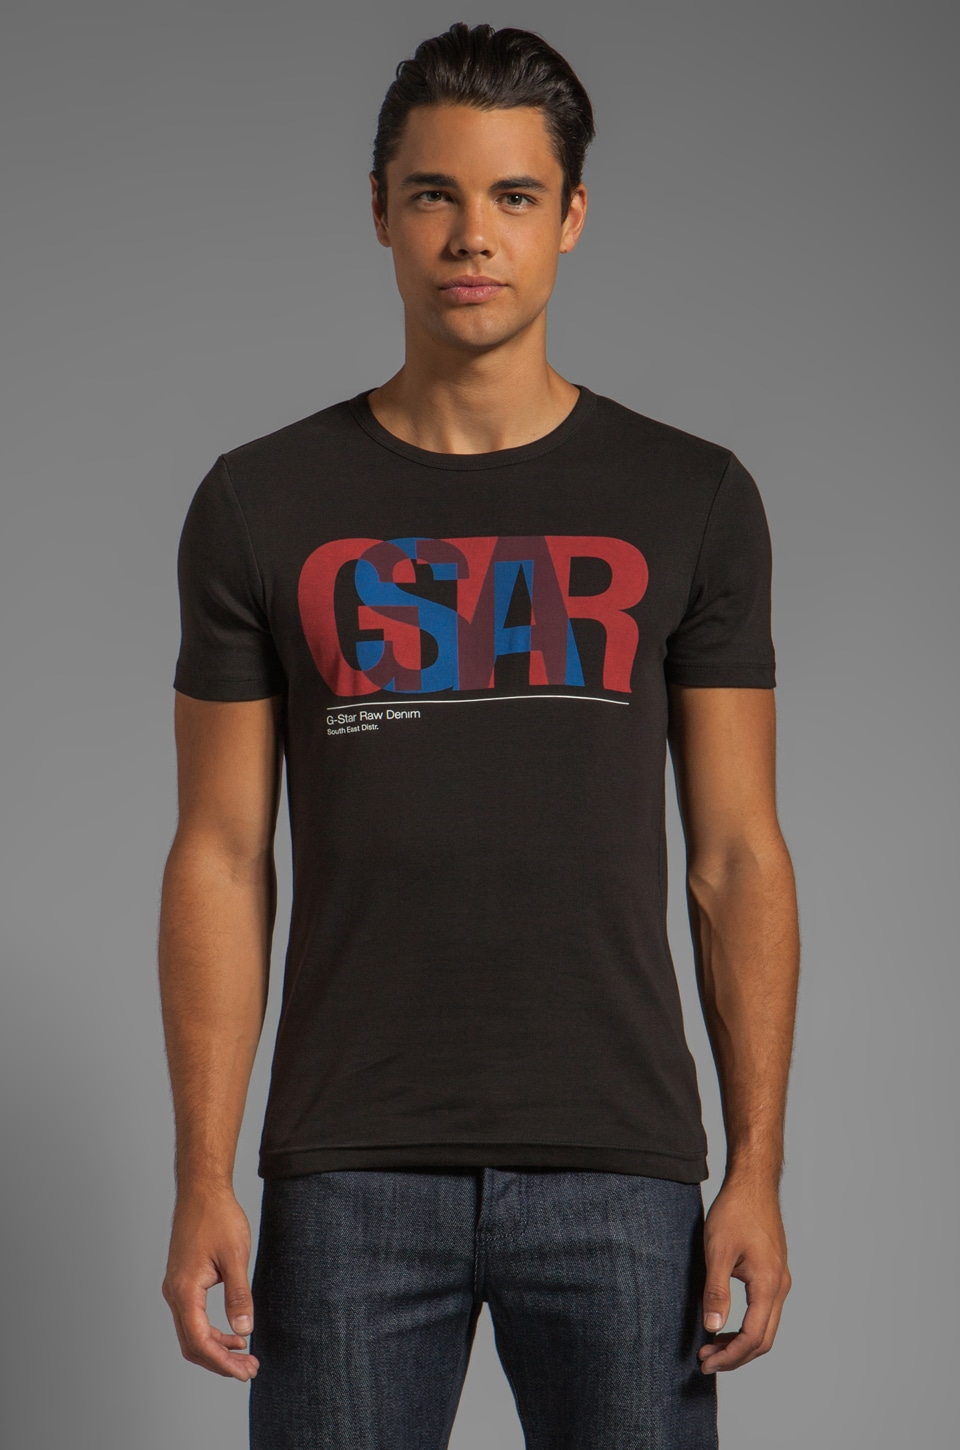 G-Star Halo R T Short Sleeve Tee in Black